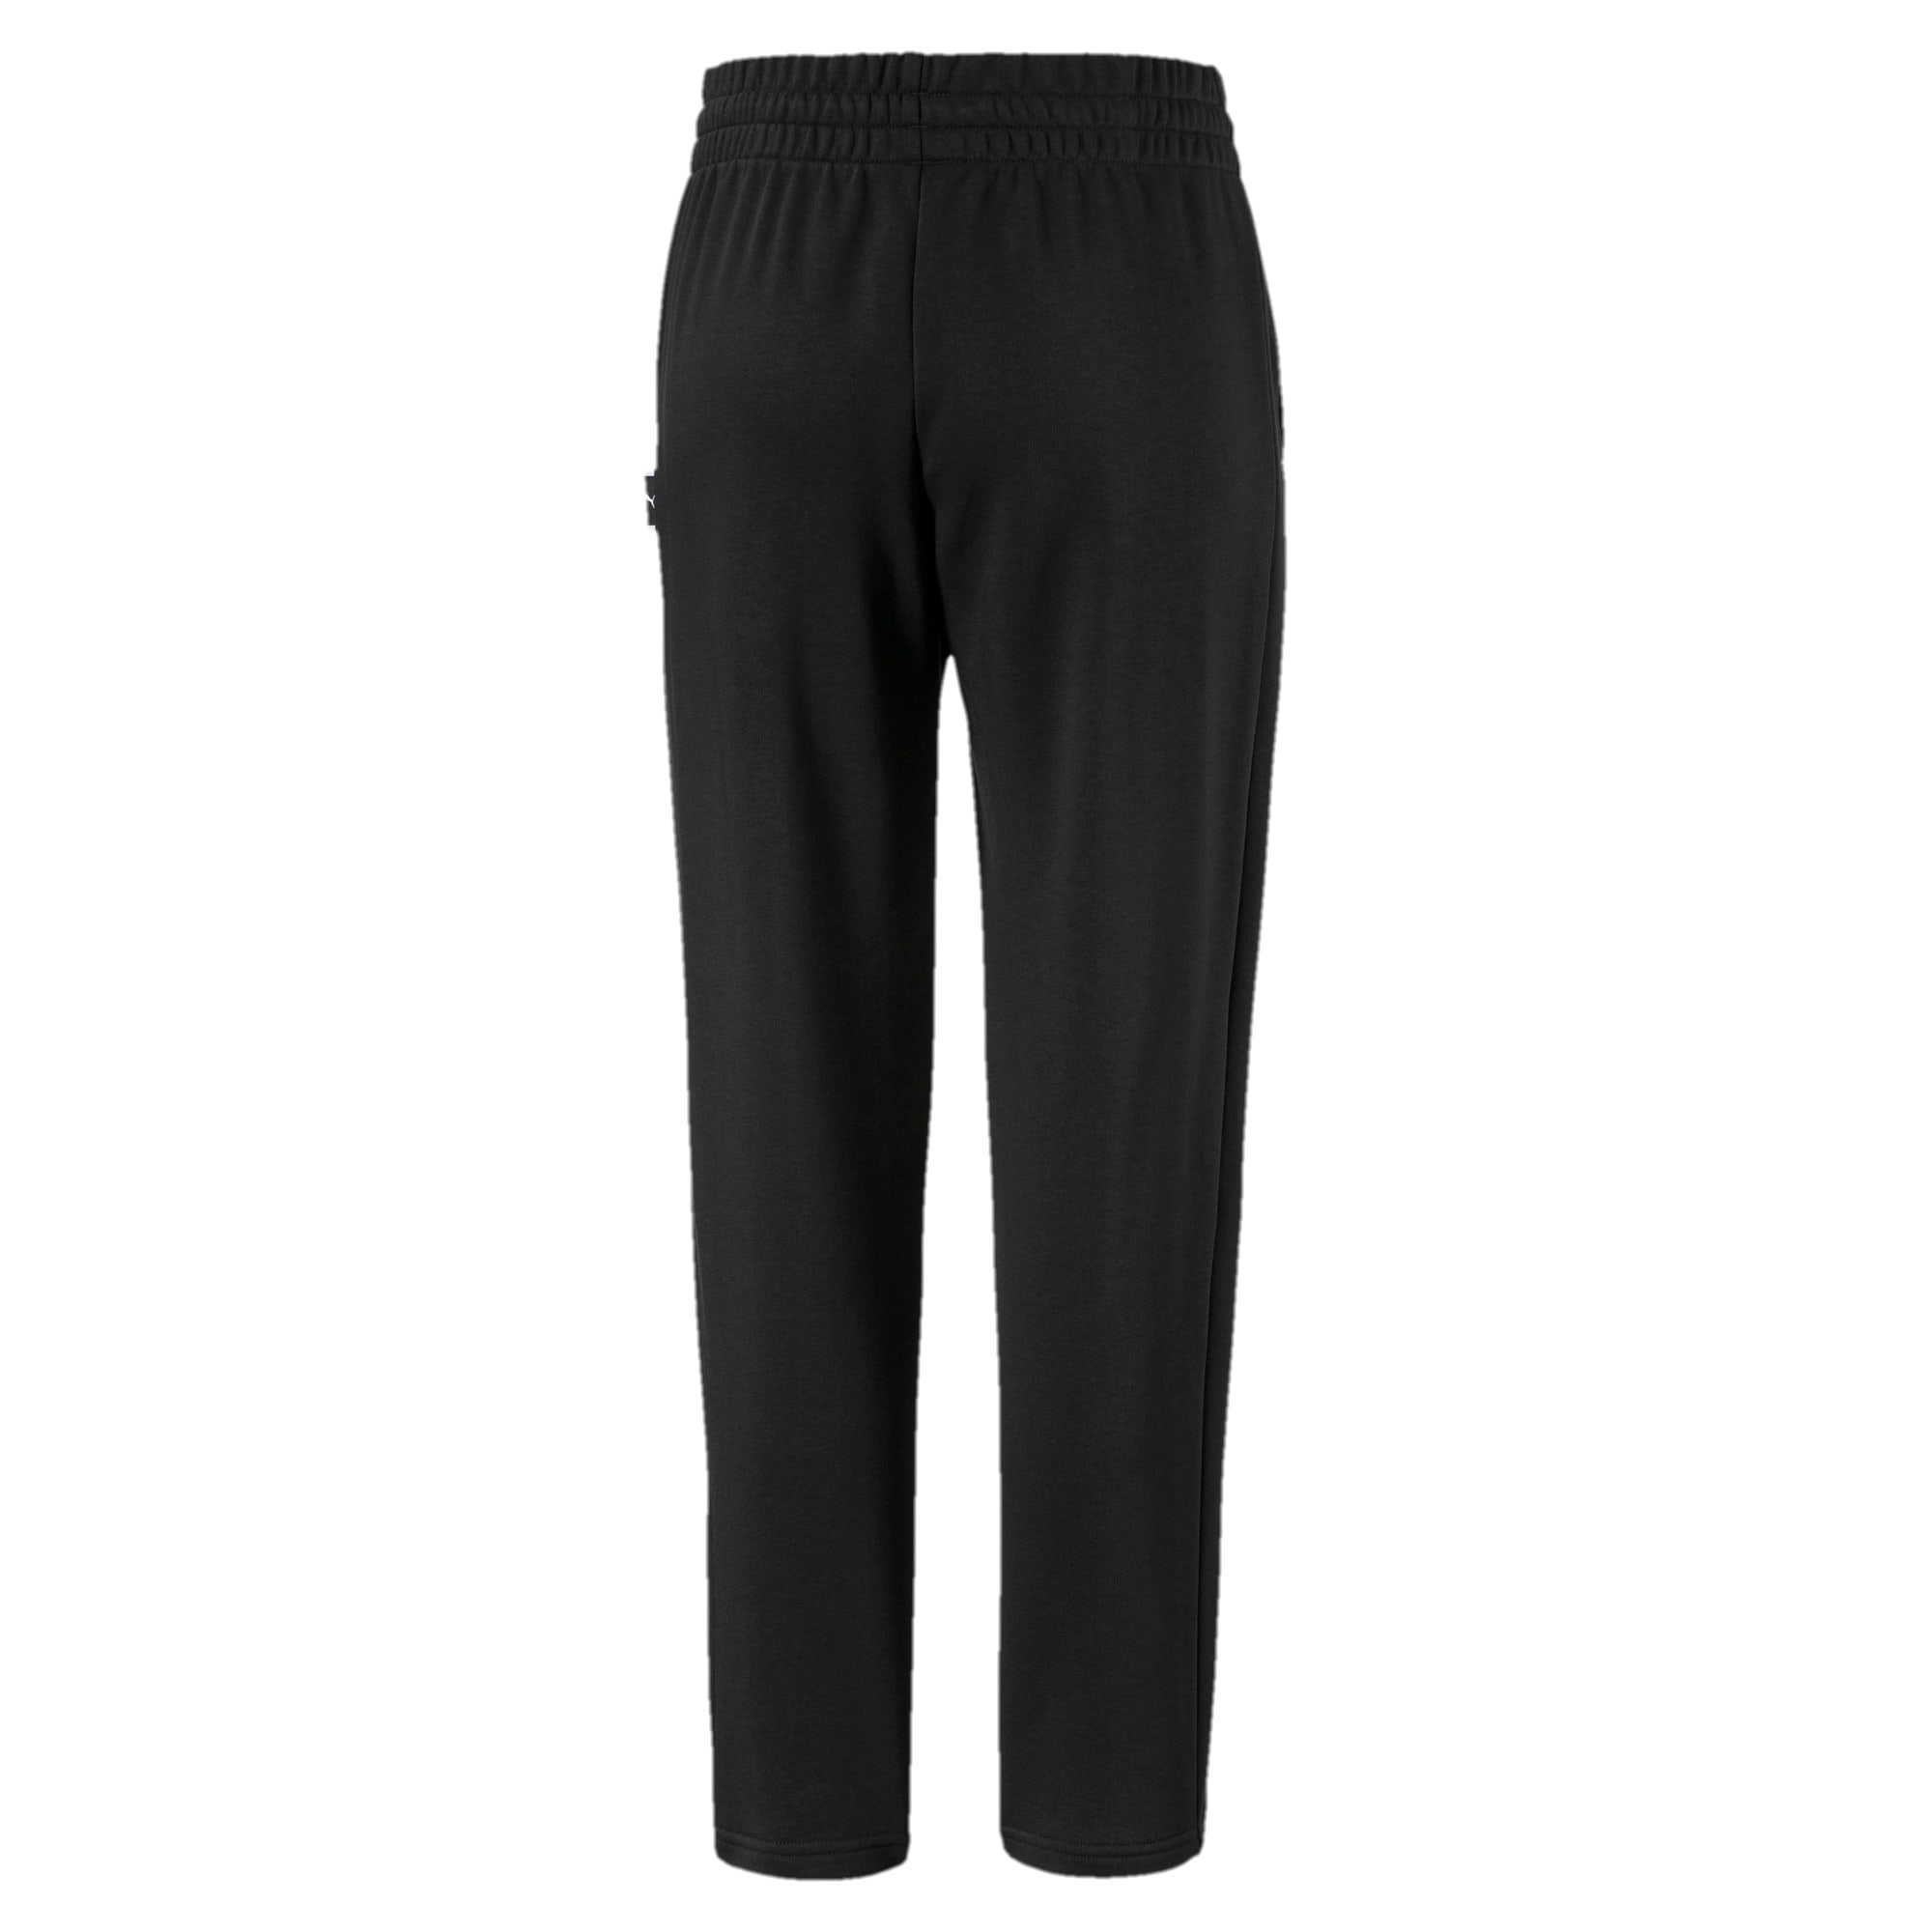 Thumbnail 5 of Downtown Knitted Women's Pants, Puma Black, medium